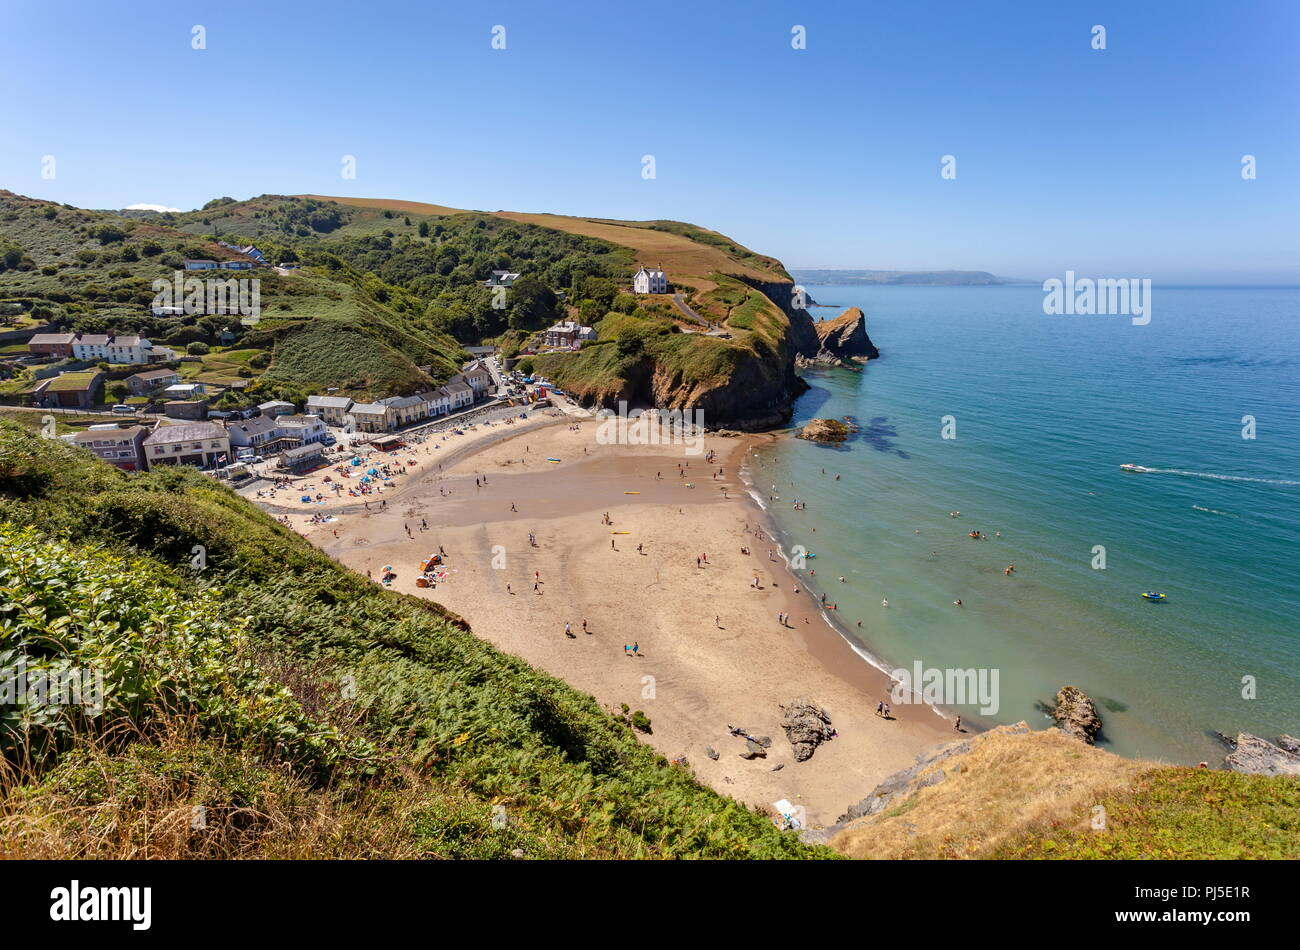 Looking down onto Llangrannog beach from the cliff path, on a warm summers day. Ceredigion, Wales - Stock Image